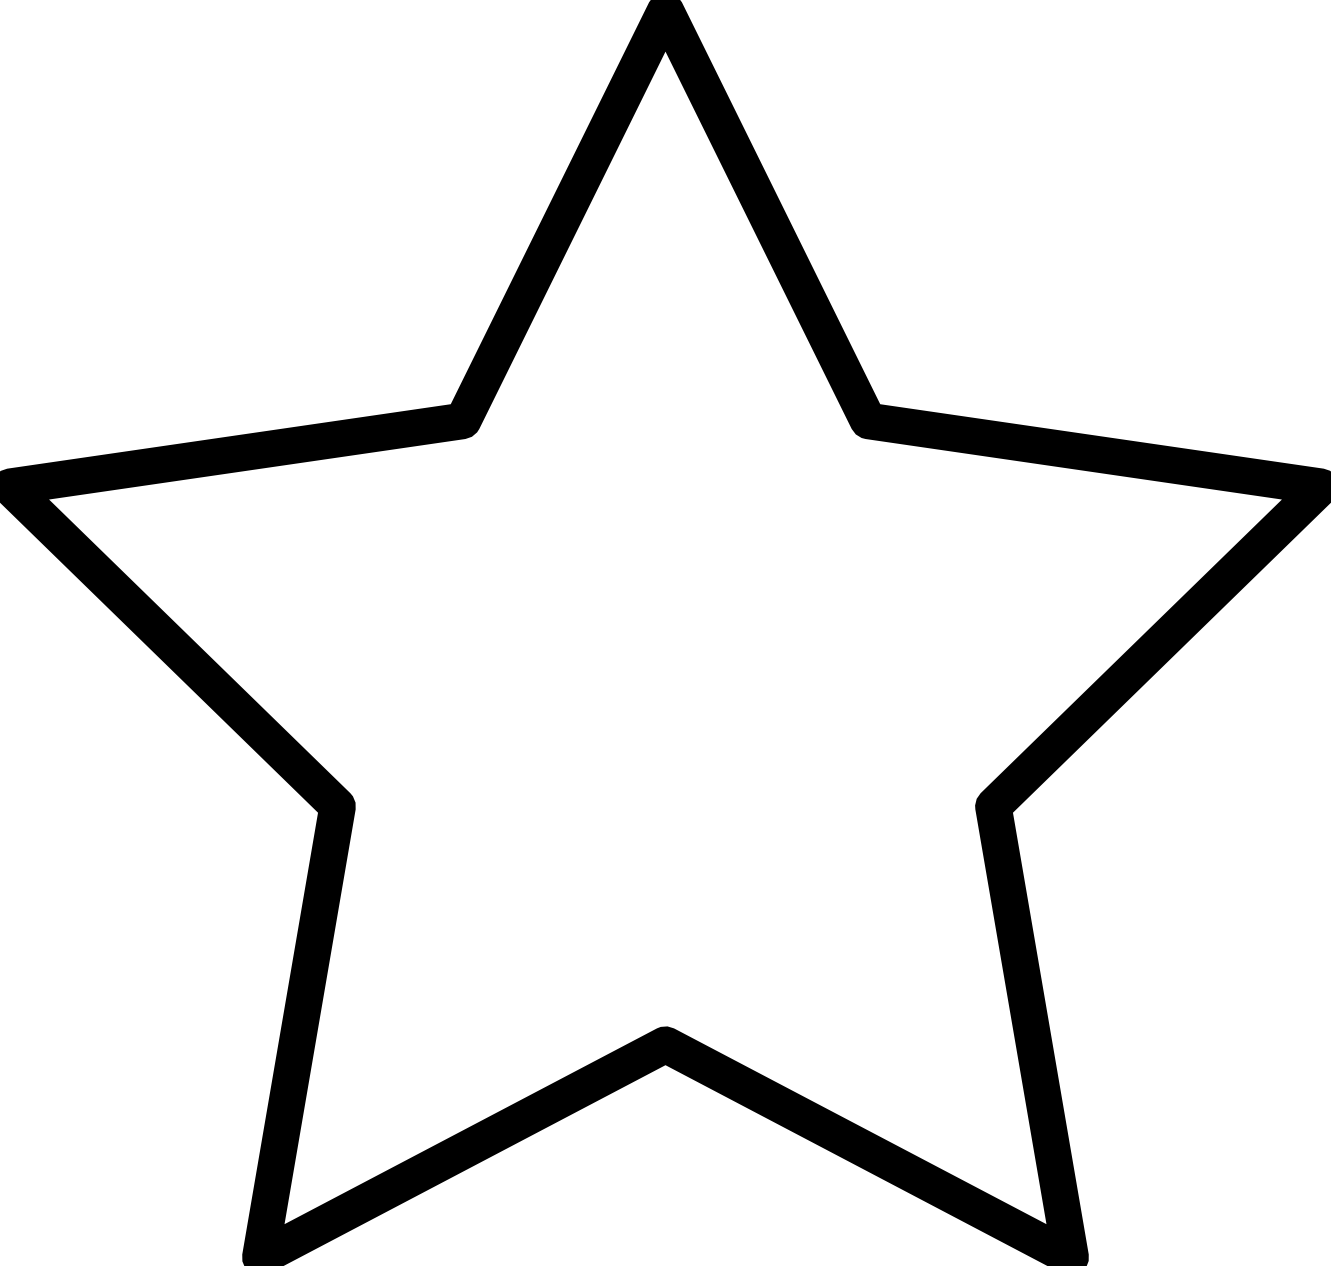 PNG Star Black And White - 60952